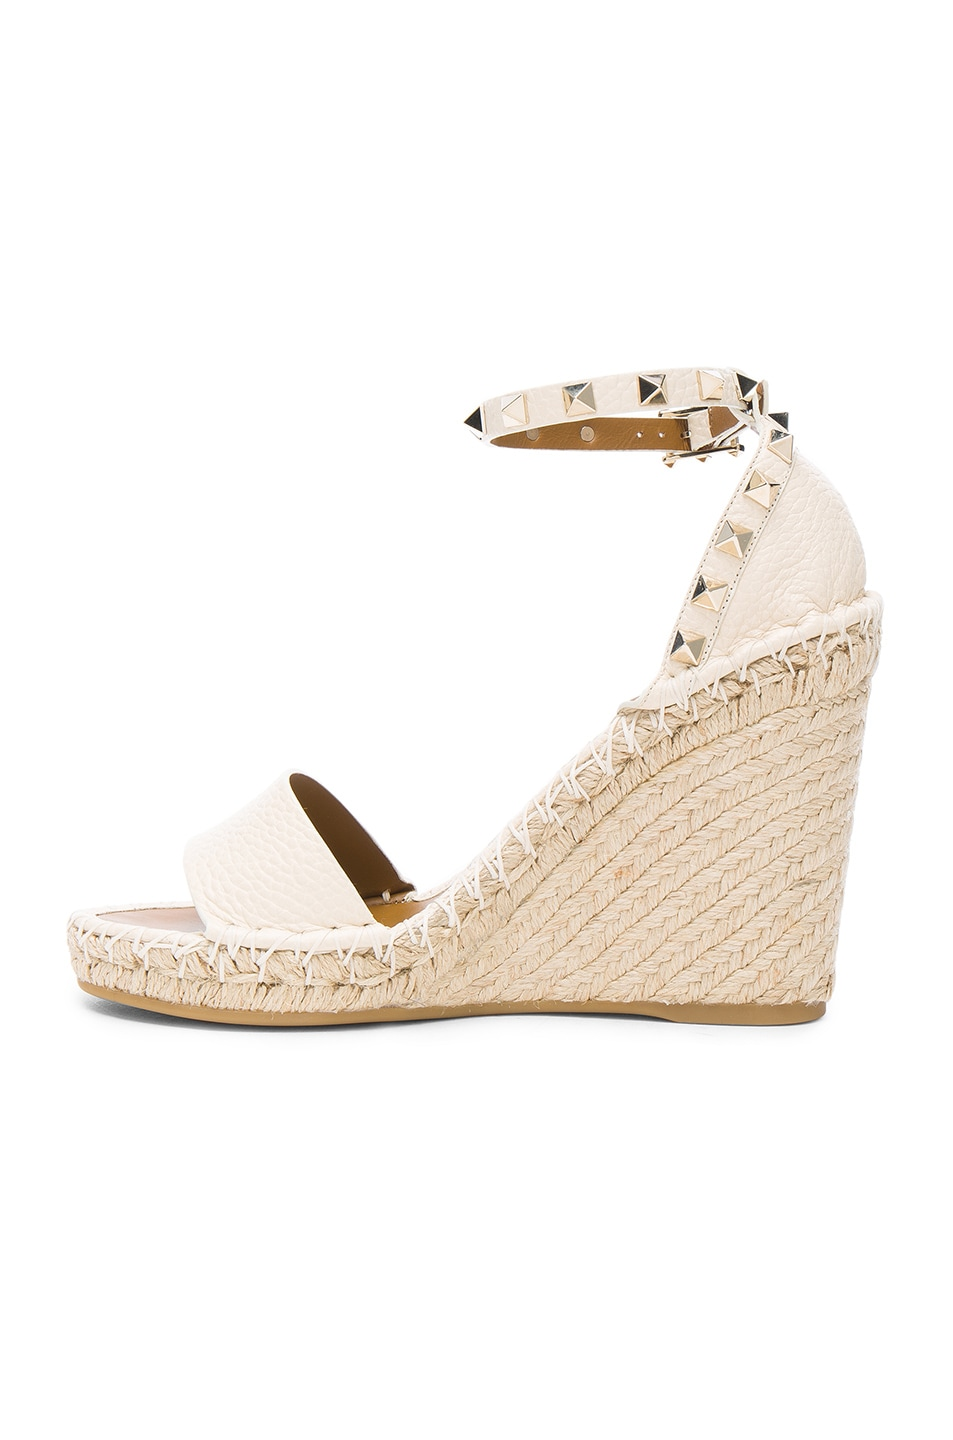 7124fe8be3e Valentino Leather Rockstud Espadrilles in Light Ivory | FWRD